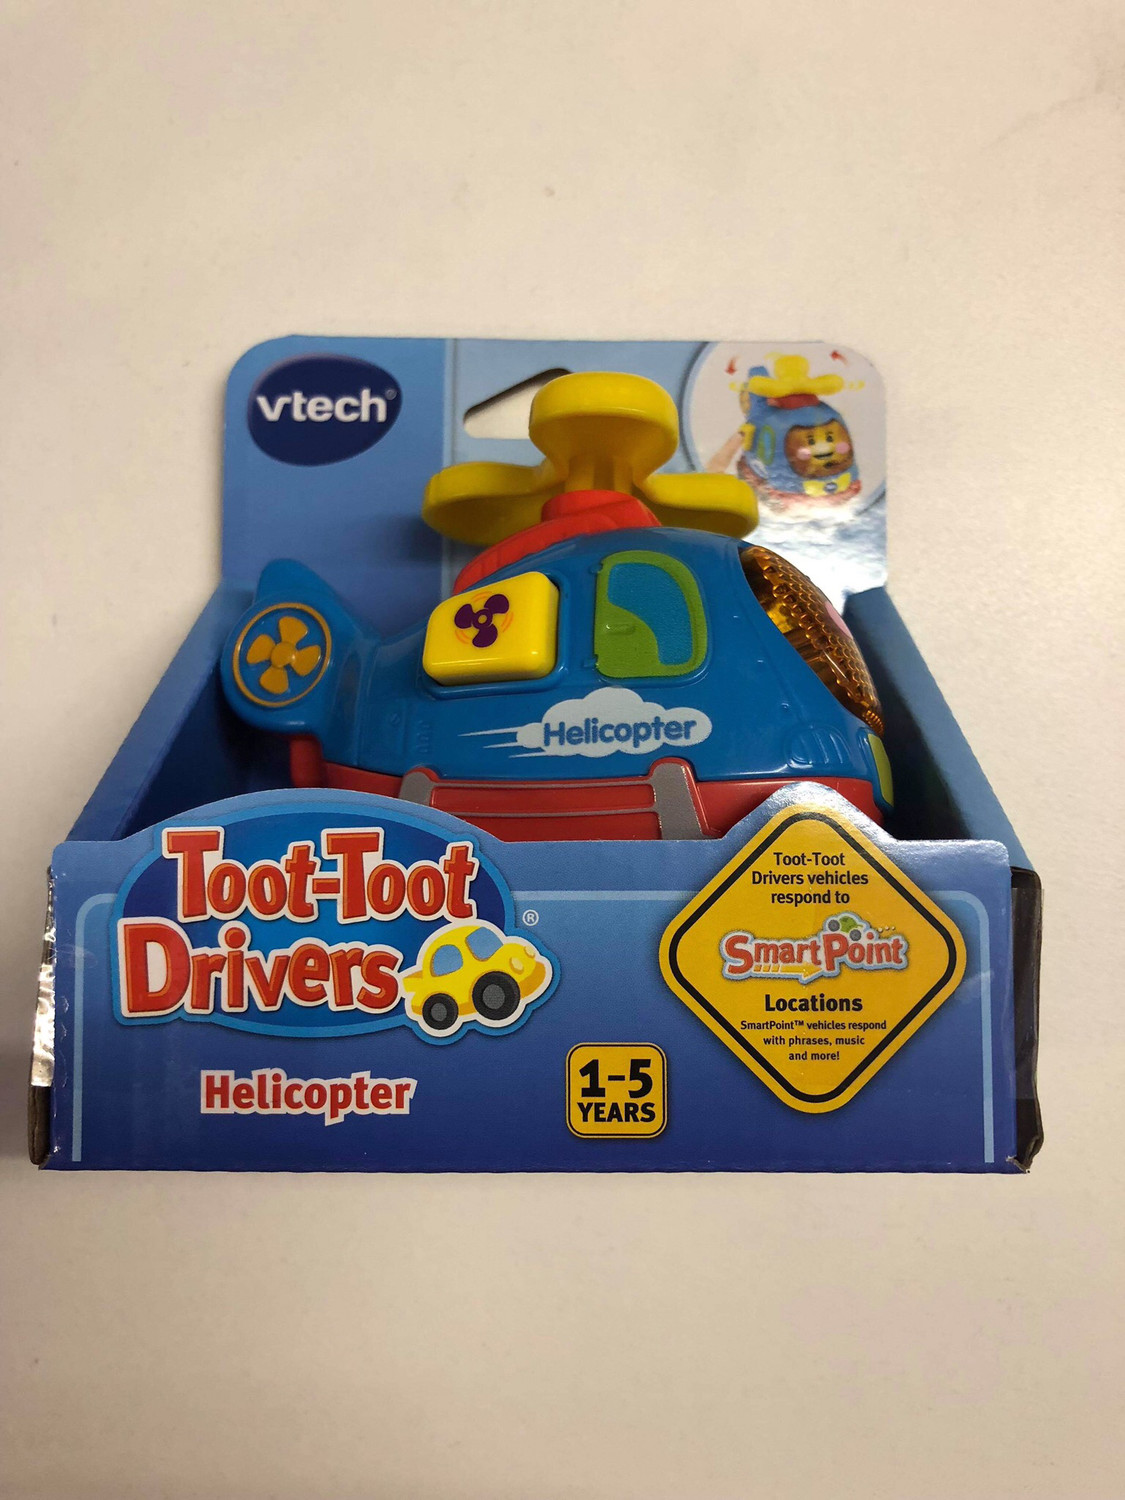 Toot Toot Drivers Helicopter